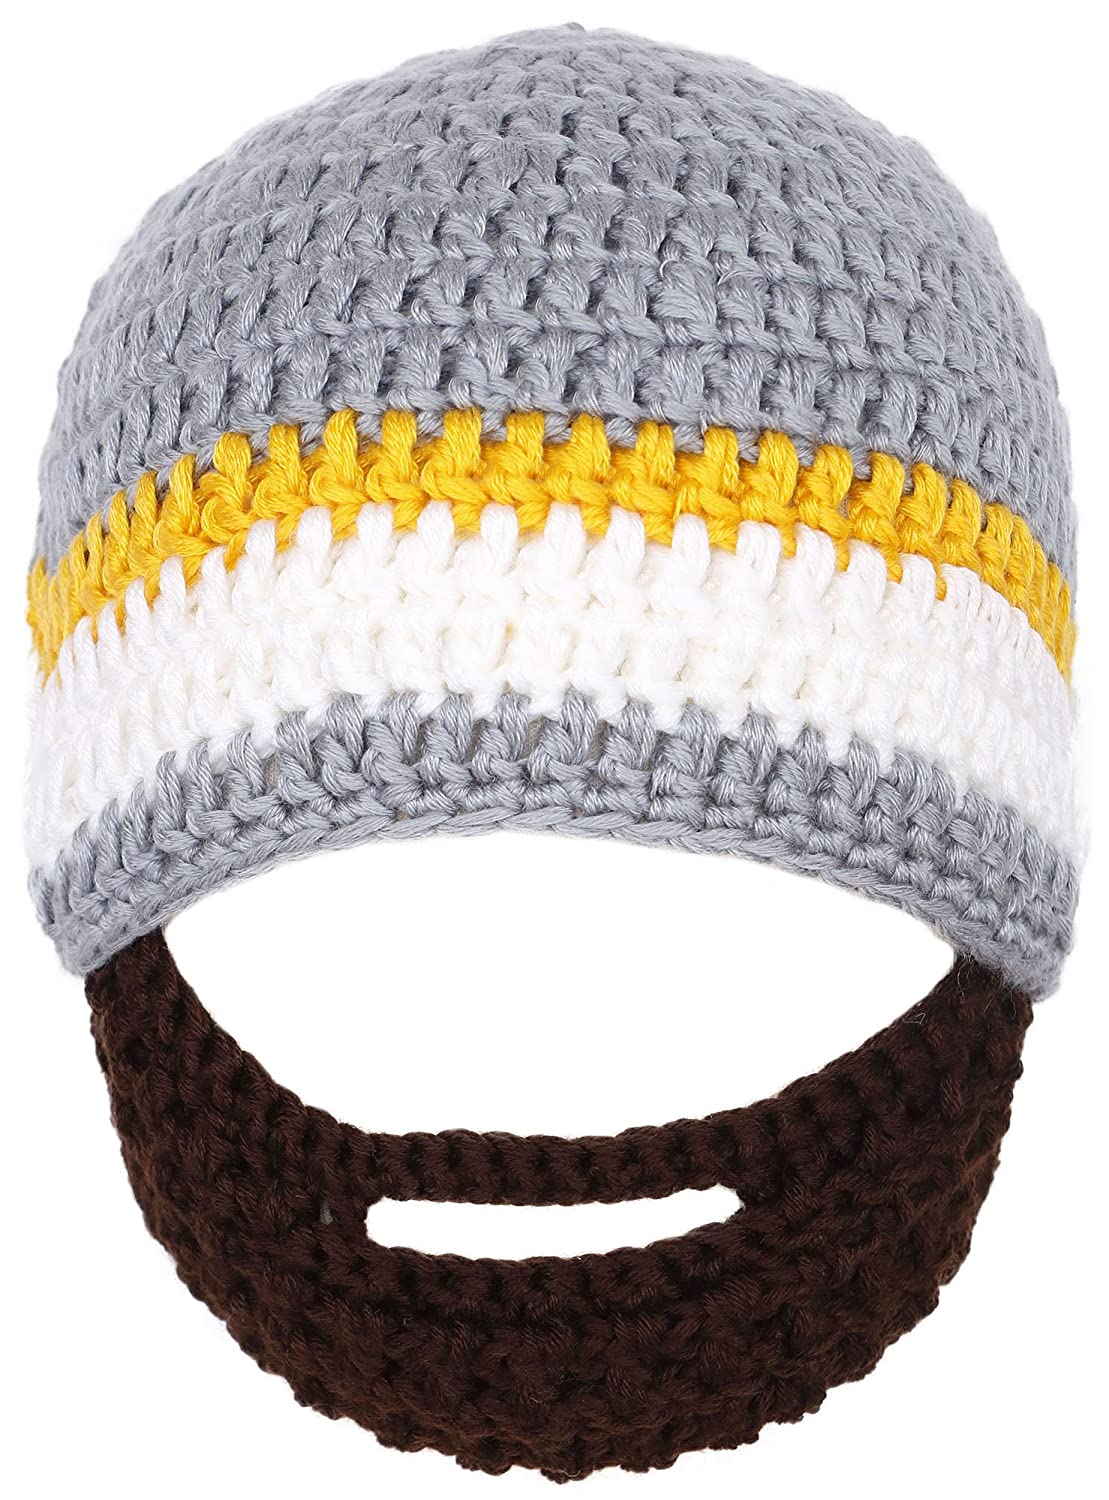 Simplicity Toddler's Winter Warm Knit Bearded Face Mask Beanie, Gery 88-B13090165-01